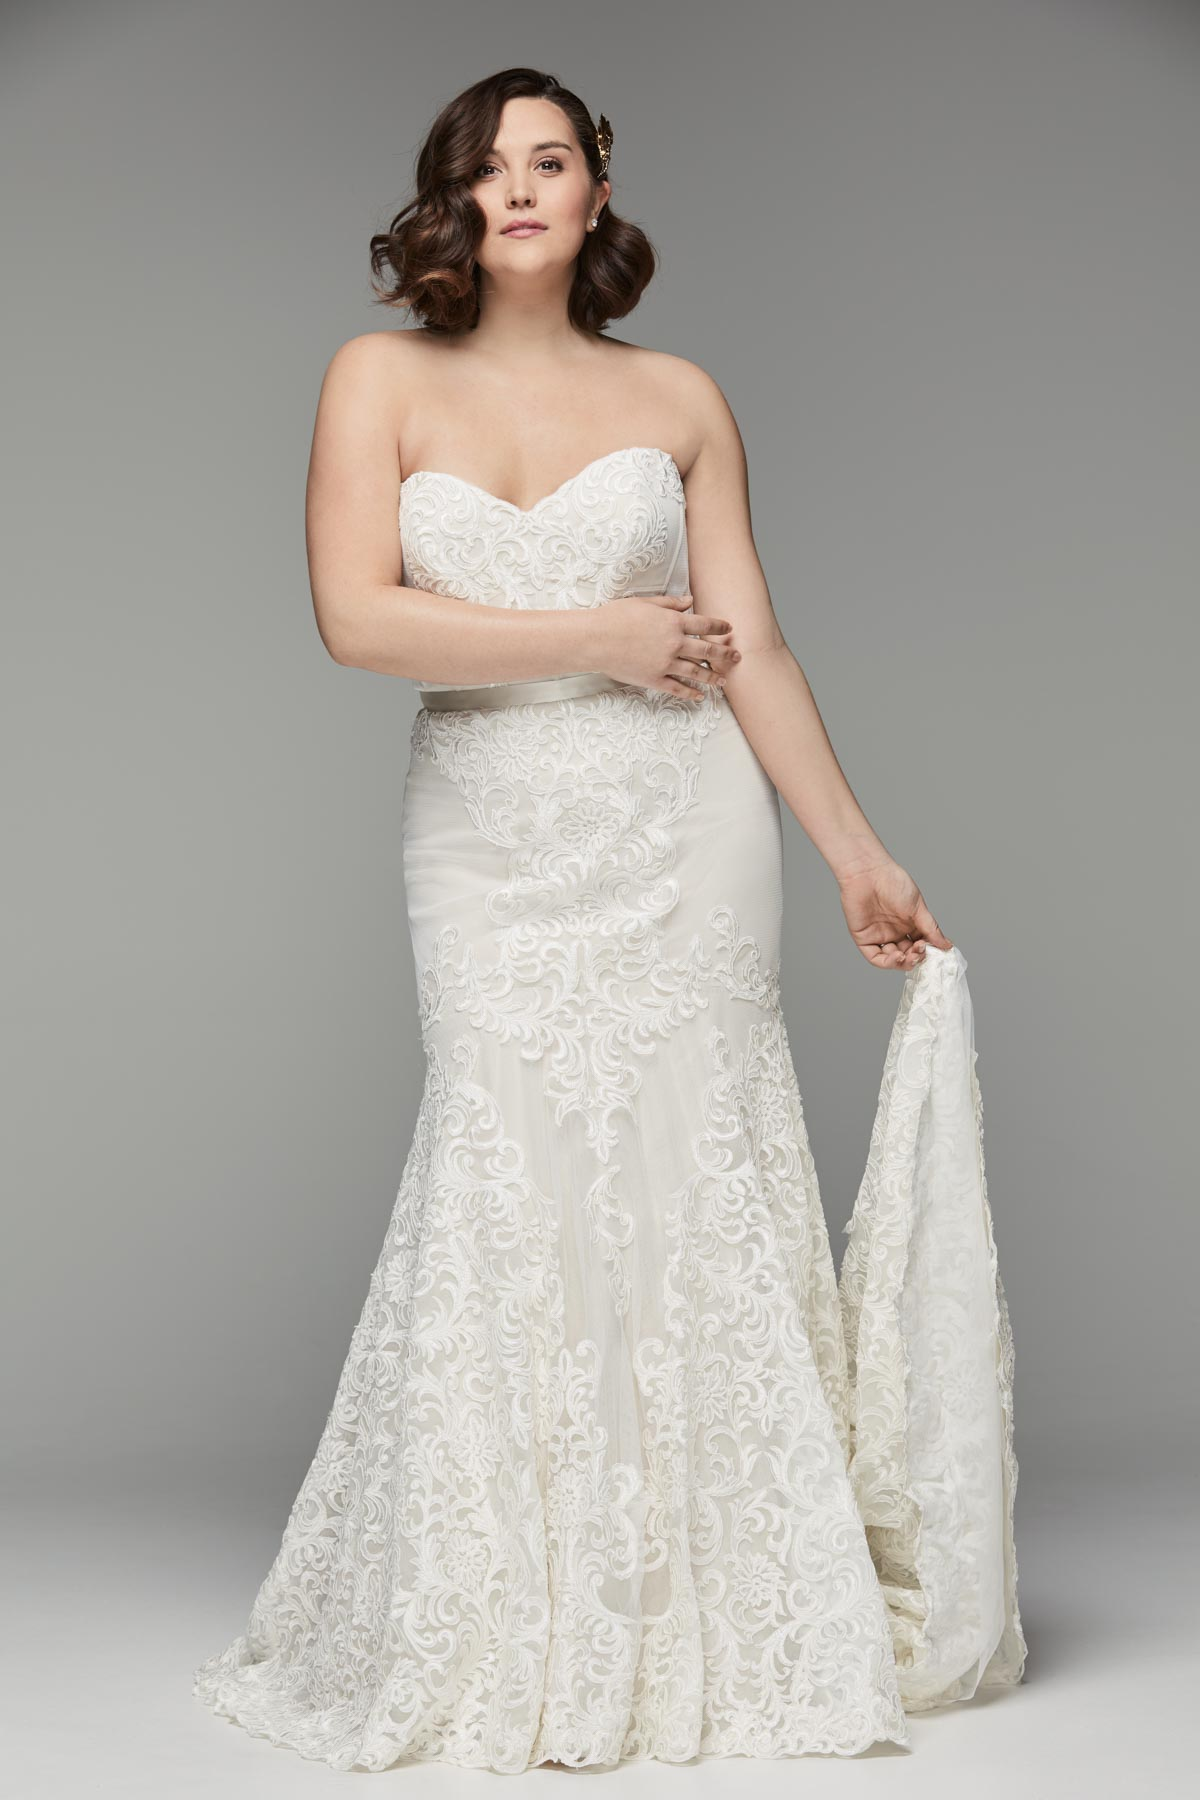 Strapless Backless Lace Hem Wedding Dress Bycouturier